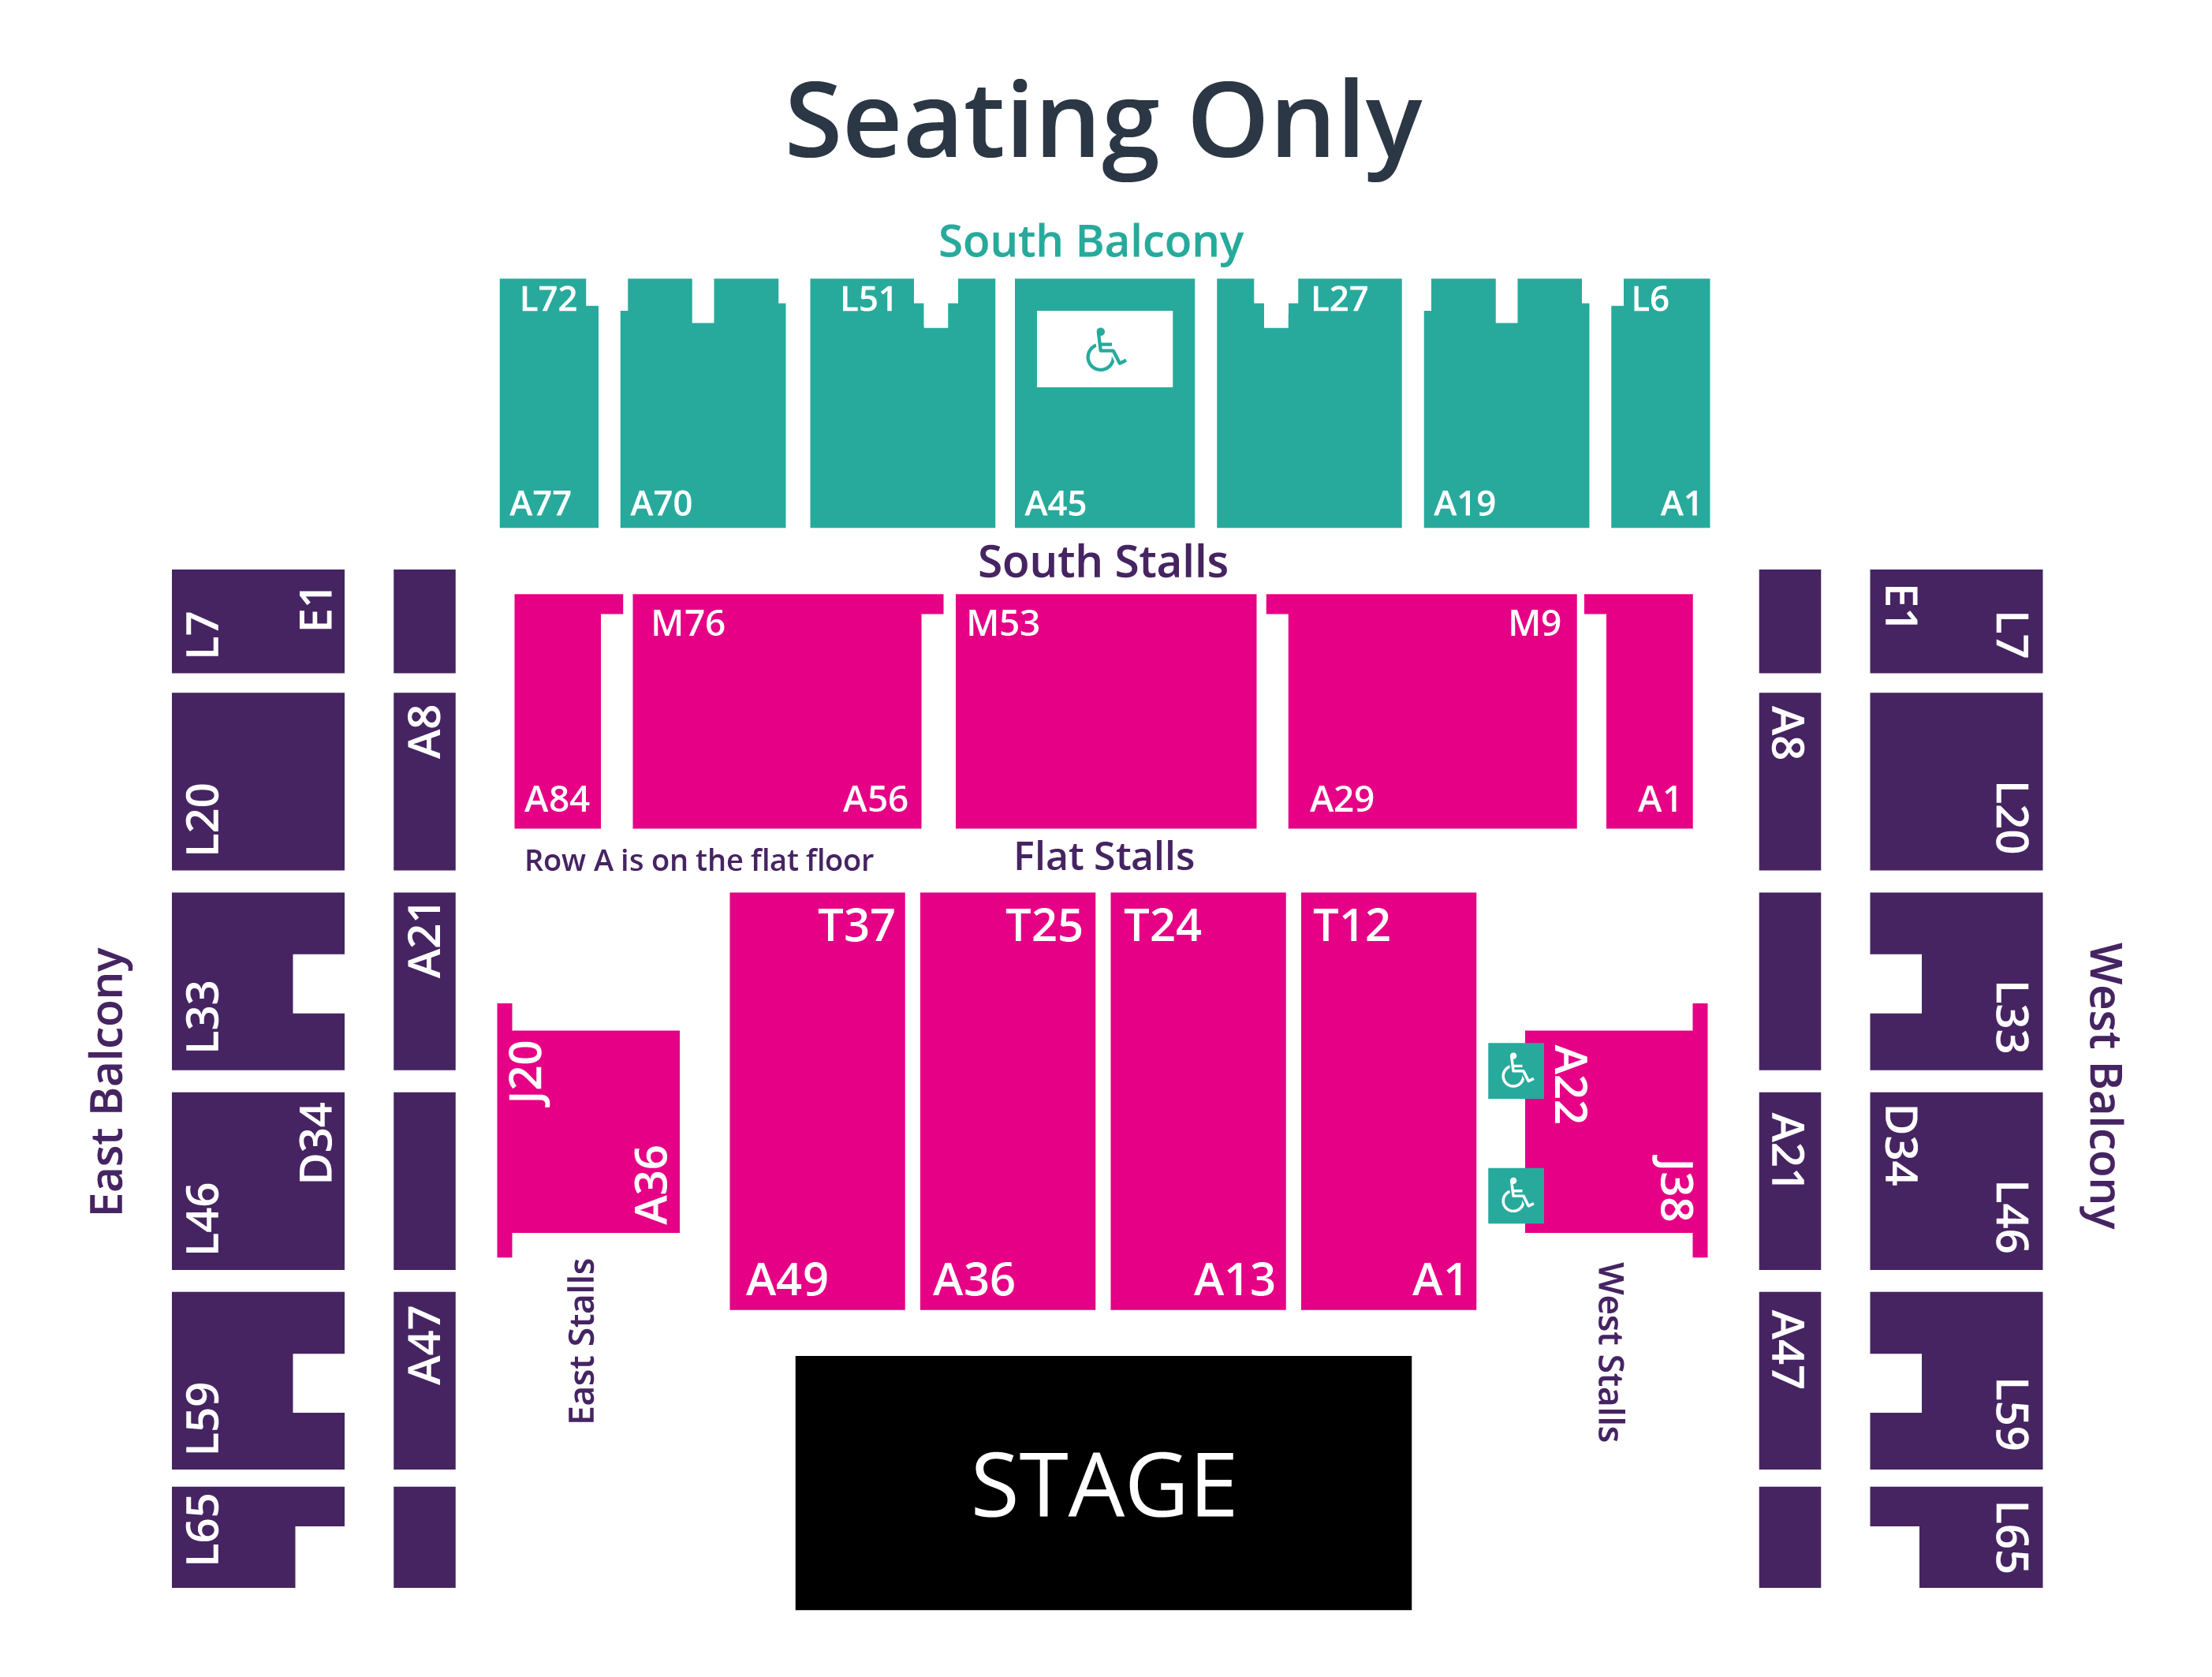 Brighton Centre Seating Only Seating Plan